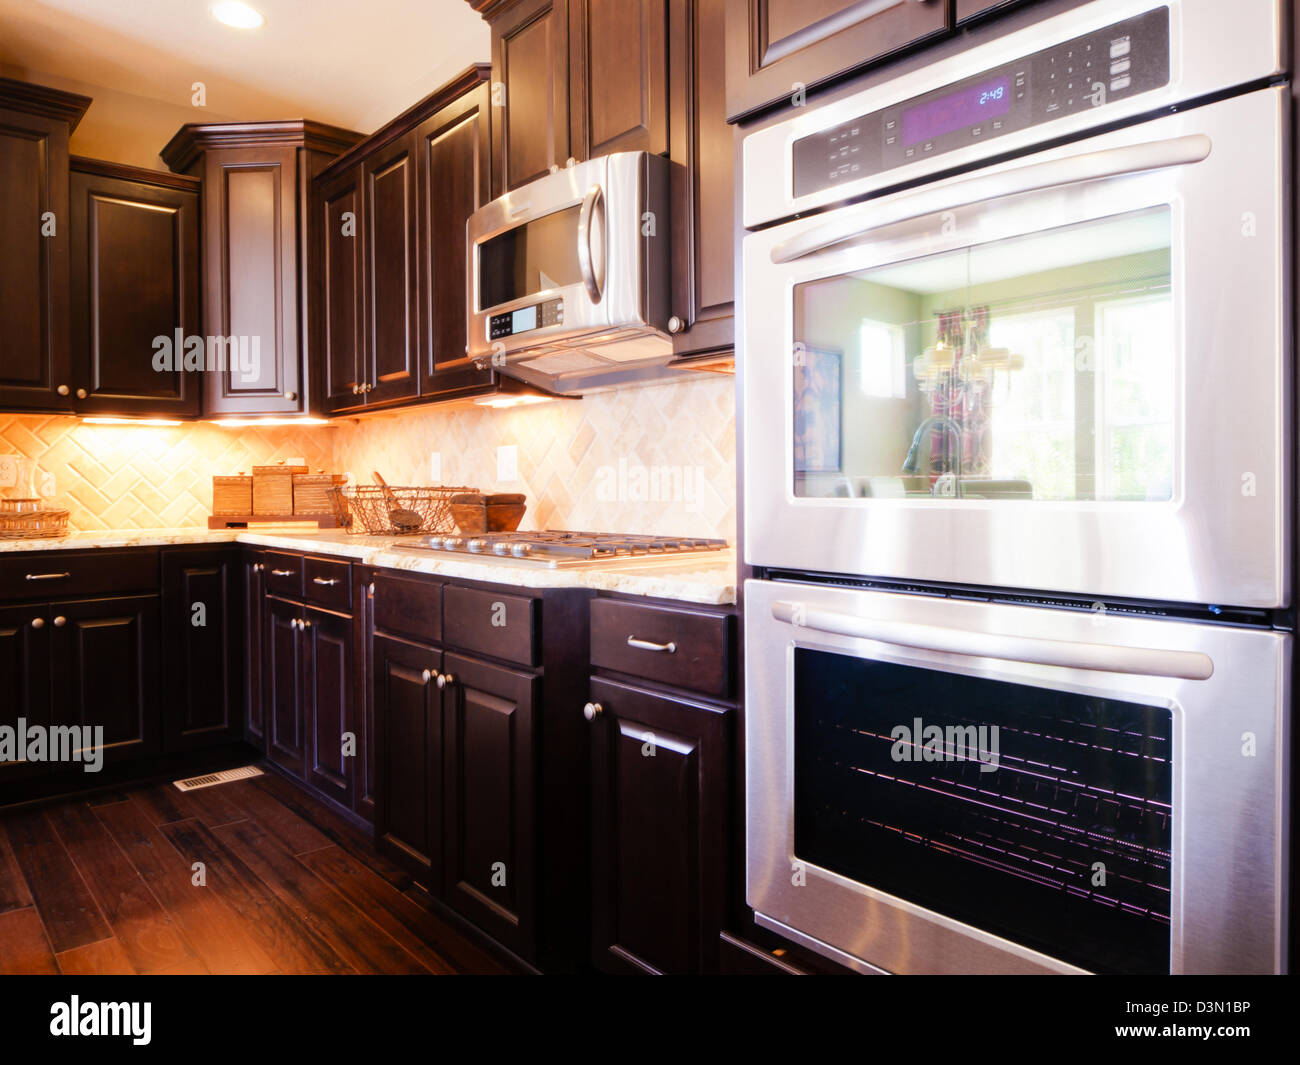 Modern kitchen with dark wood cabinets and hardwood floors Stock ...